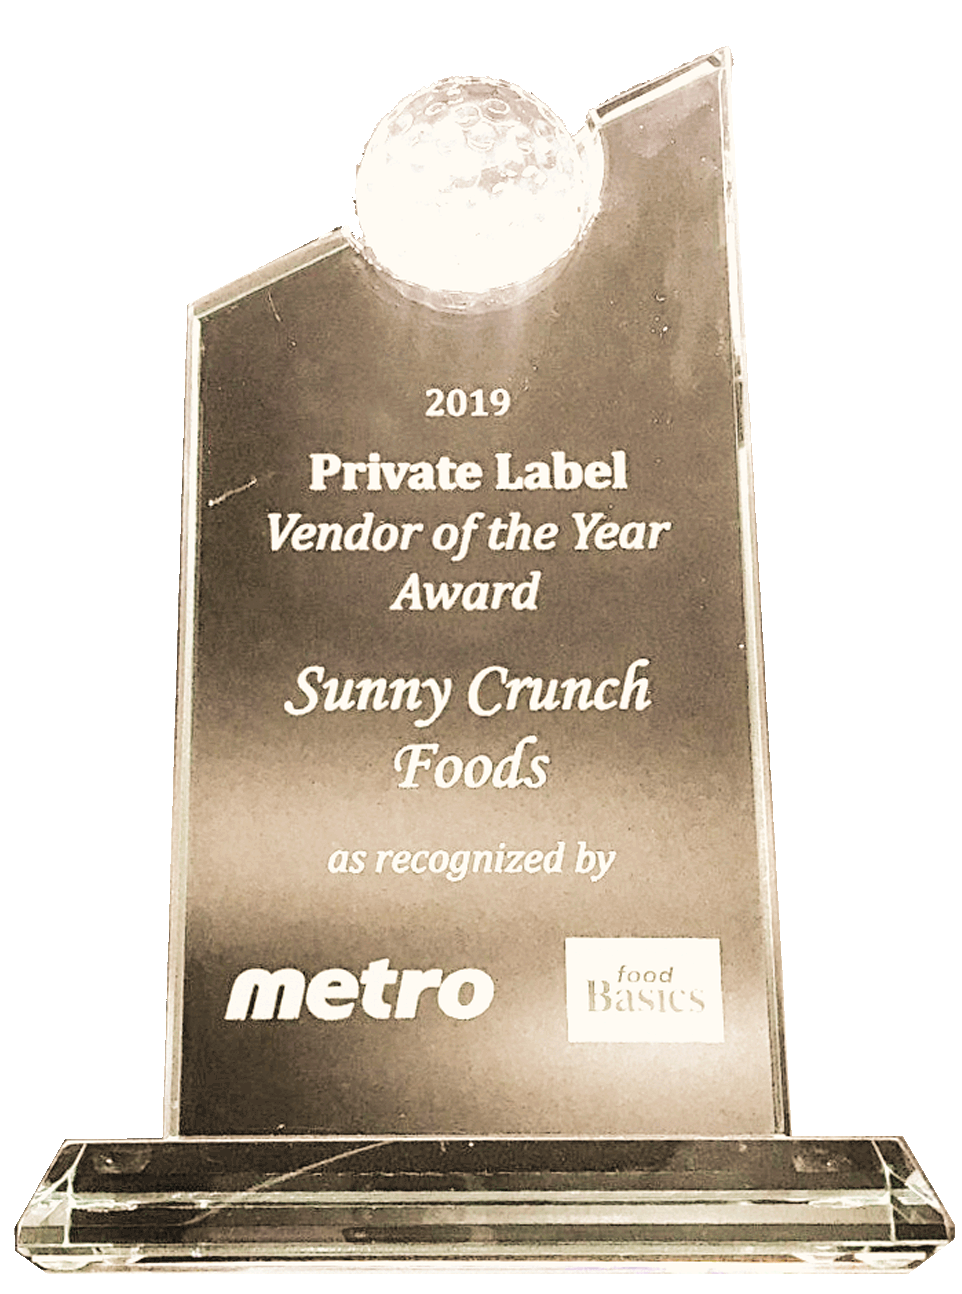 Private-Vendor-of-the-year-Award-Sunny-Crunch